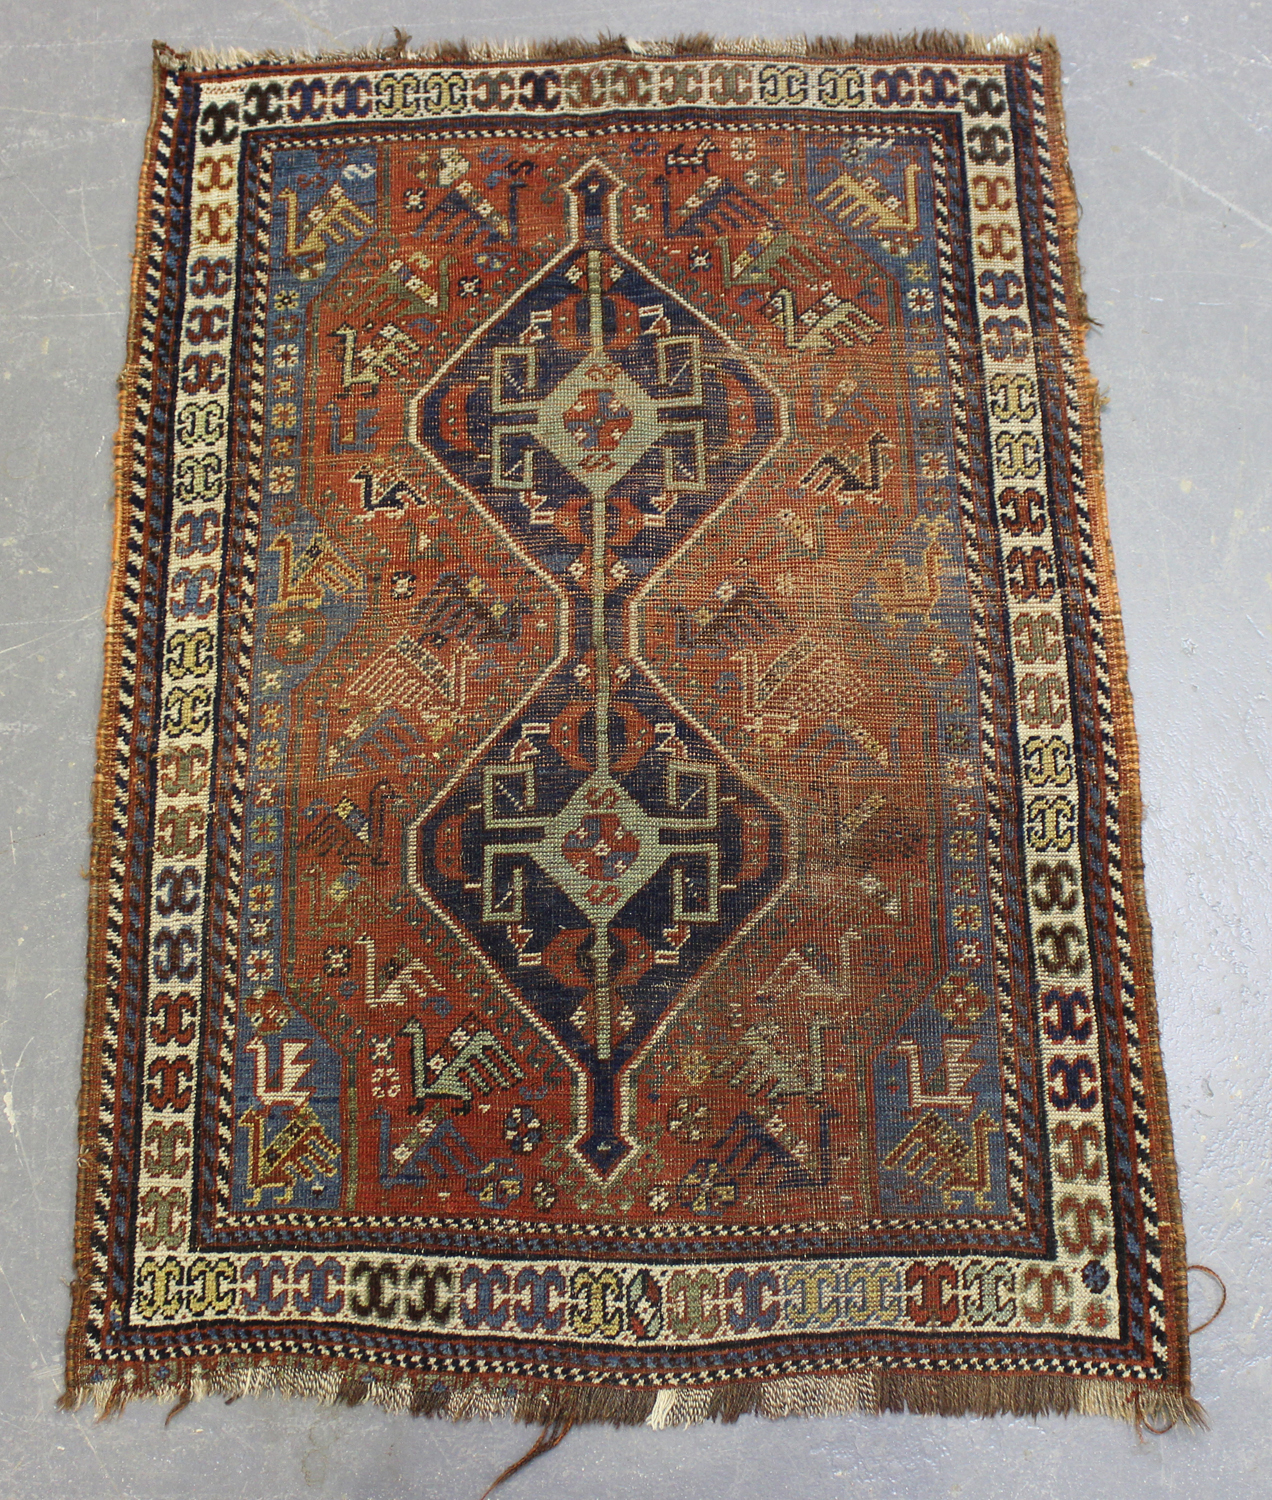 A Kamseh rug, South-west Persia, late 19th/early 20th century, the terracotta field with a pair of